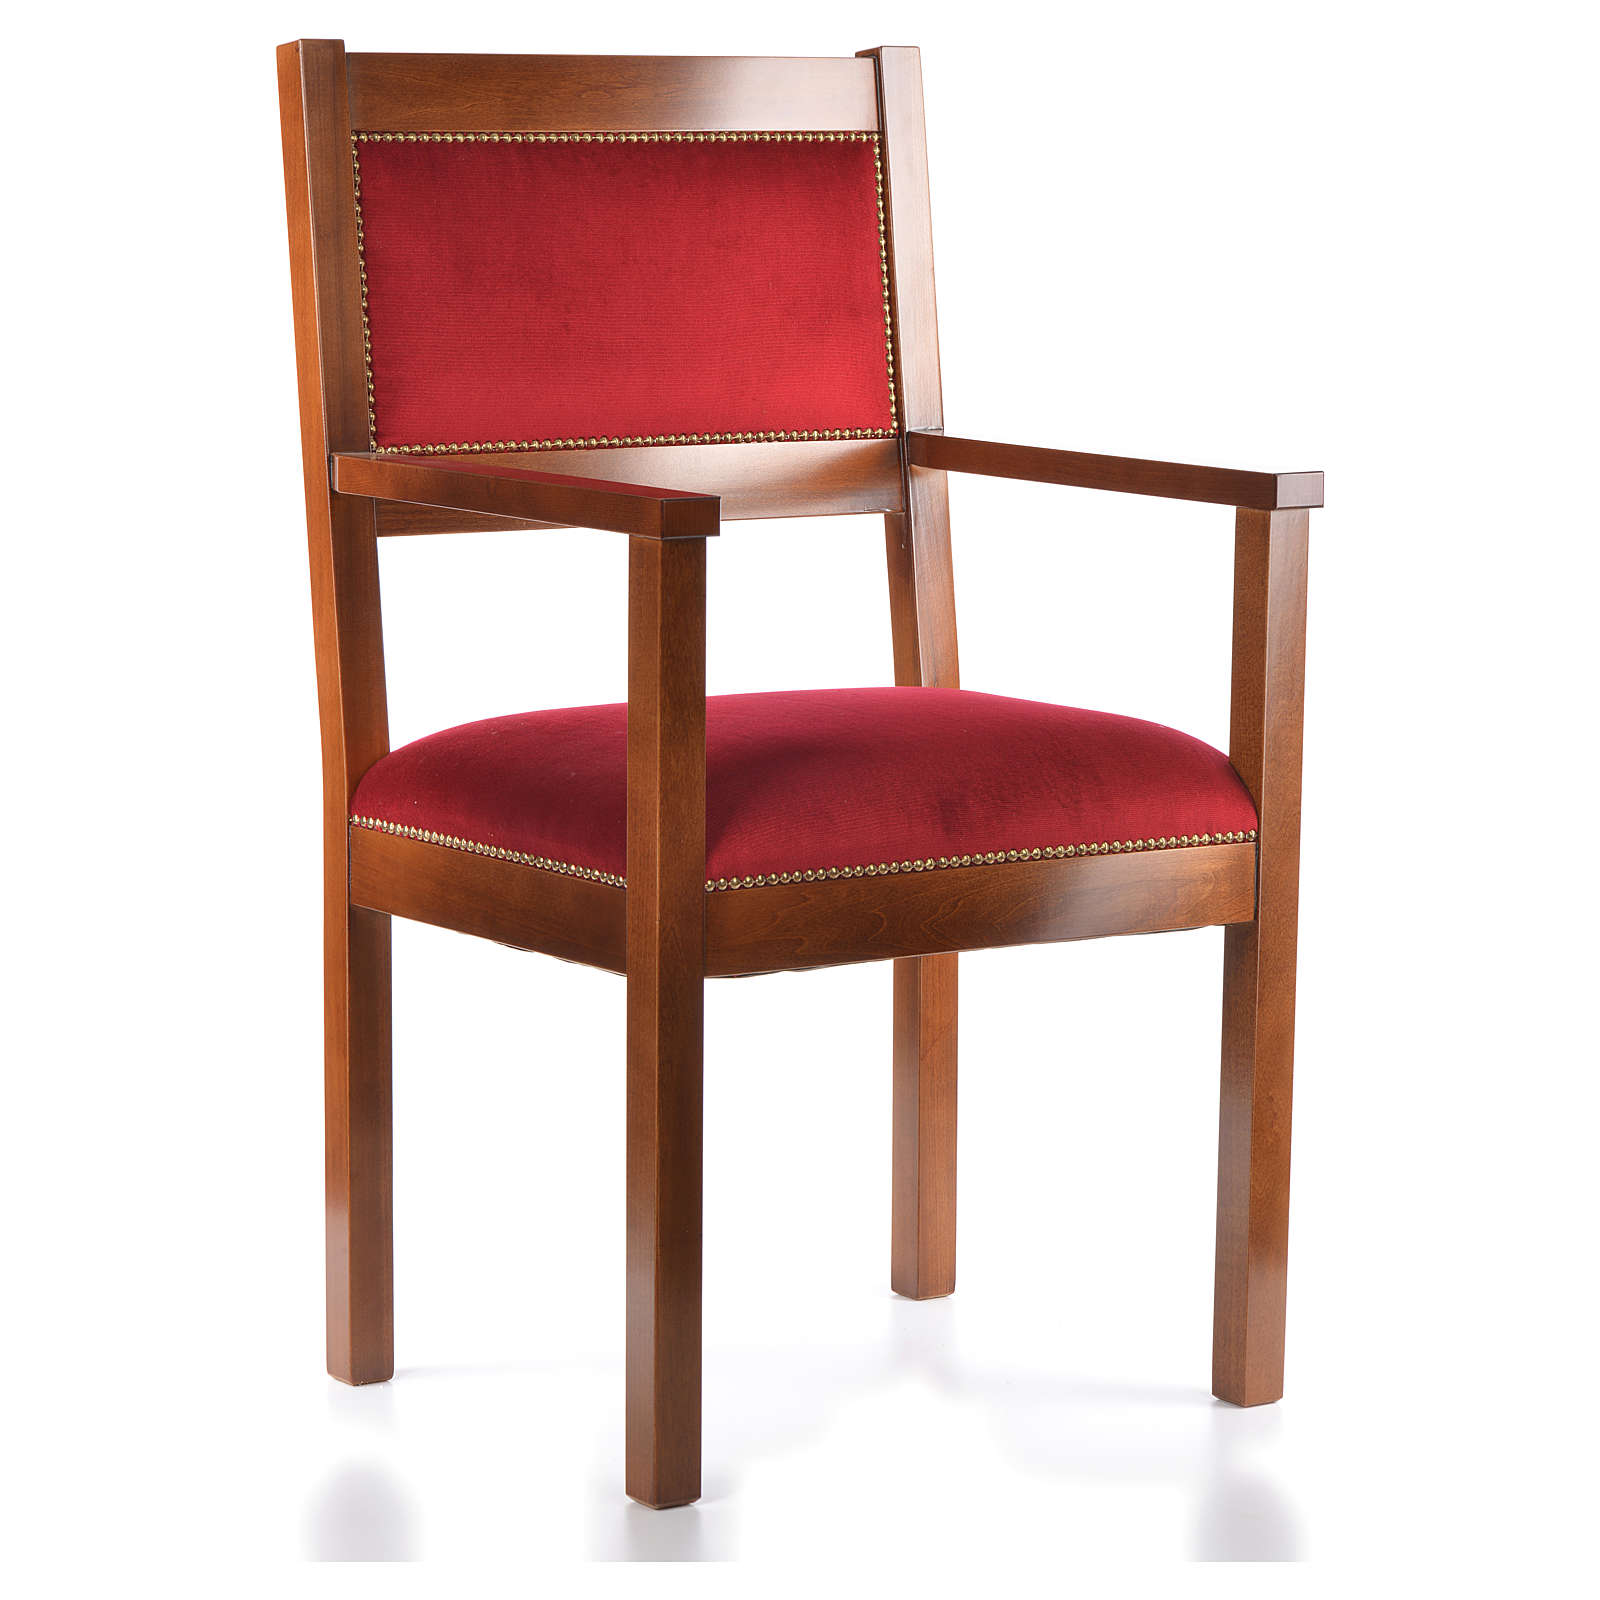 Fauteuil moderne noyer style Assise 4